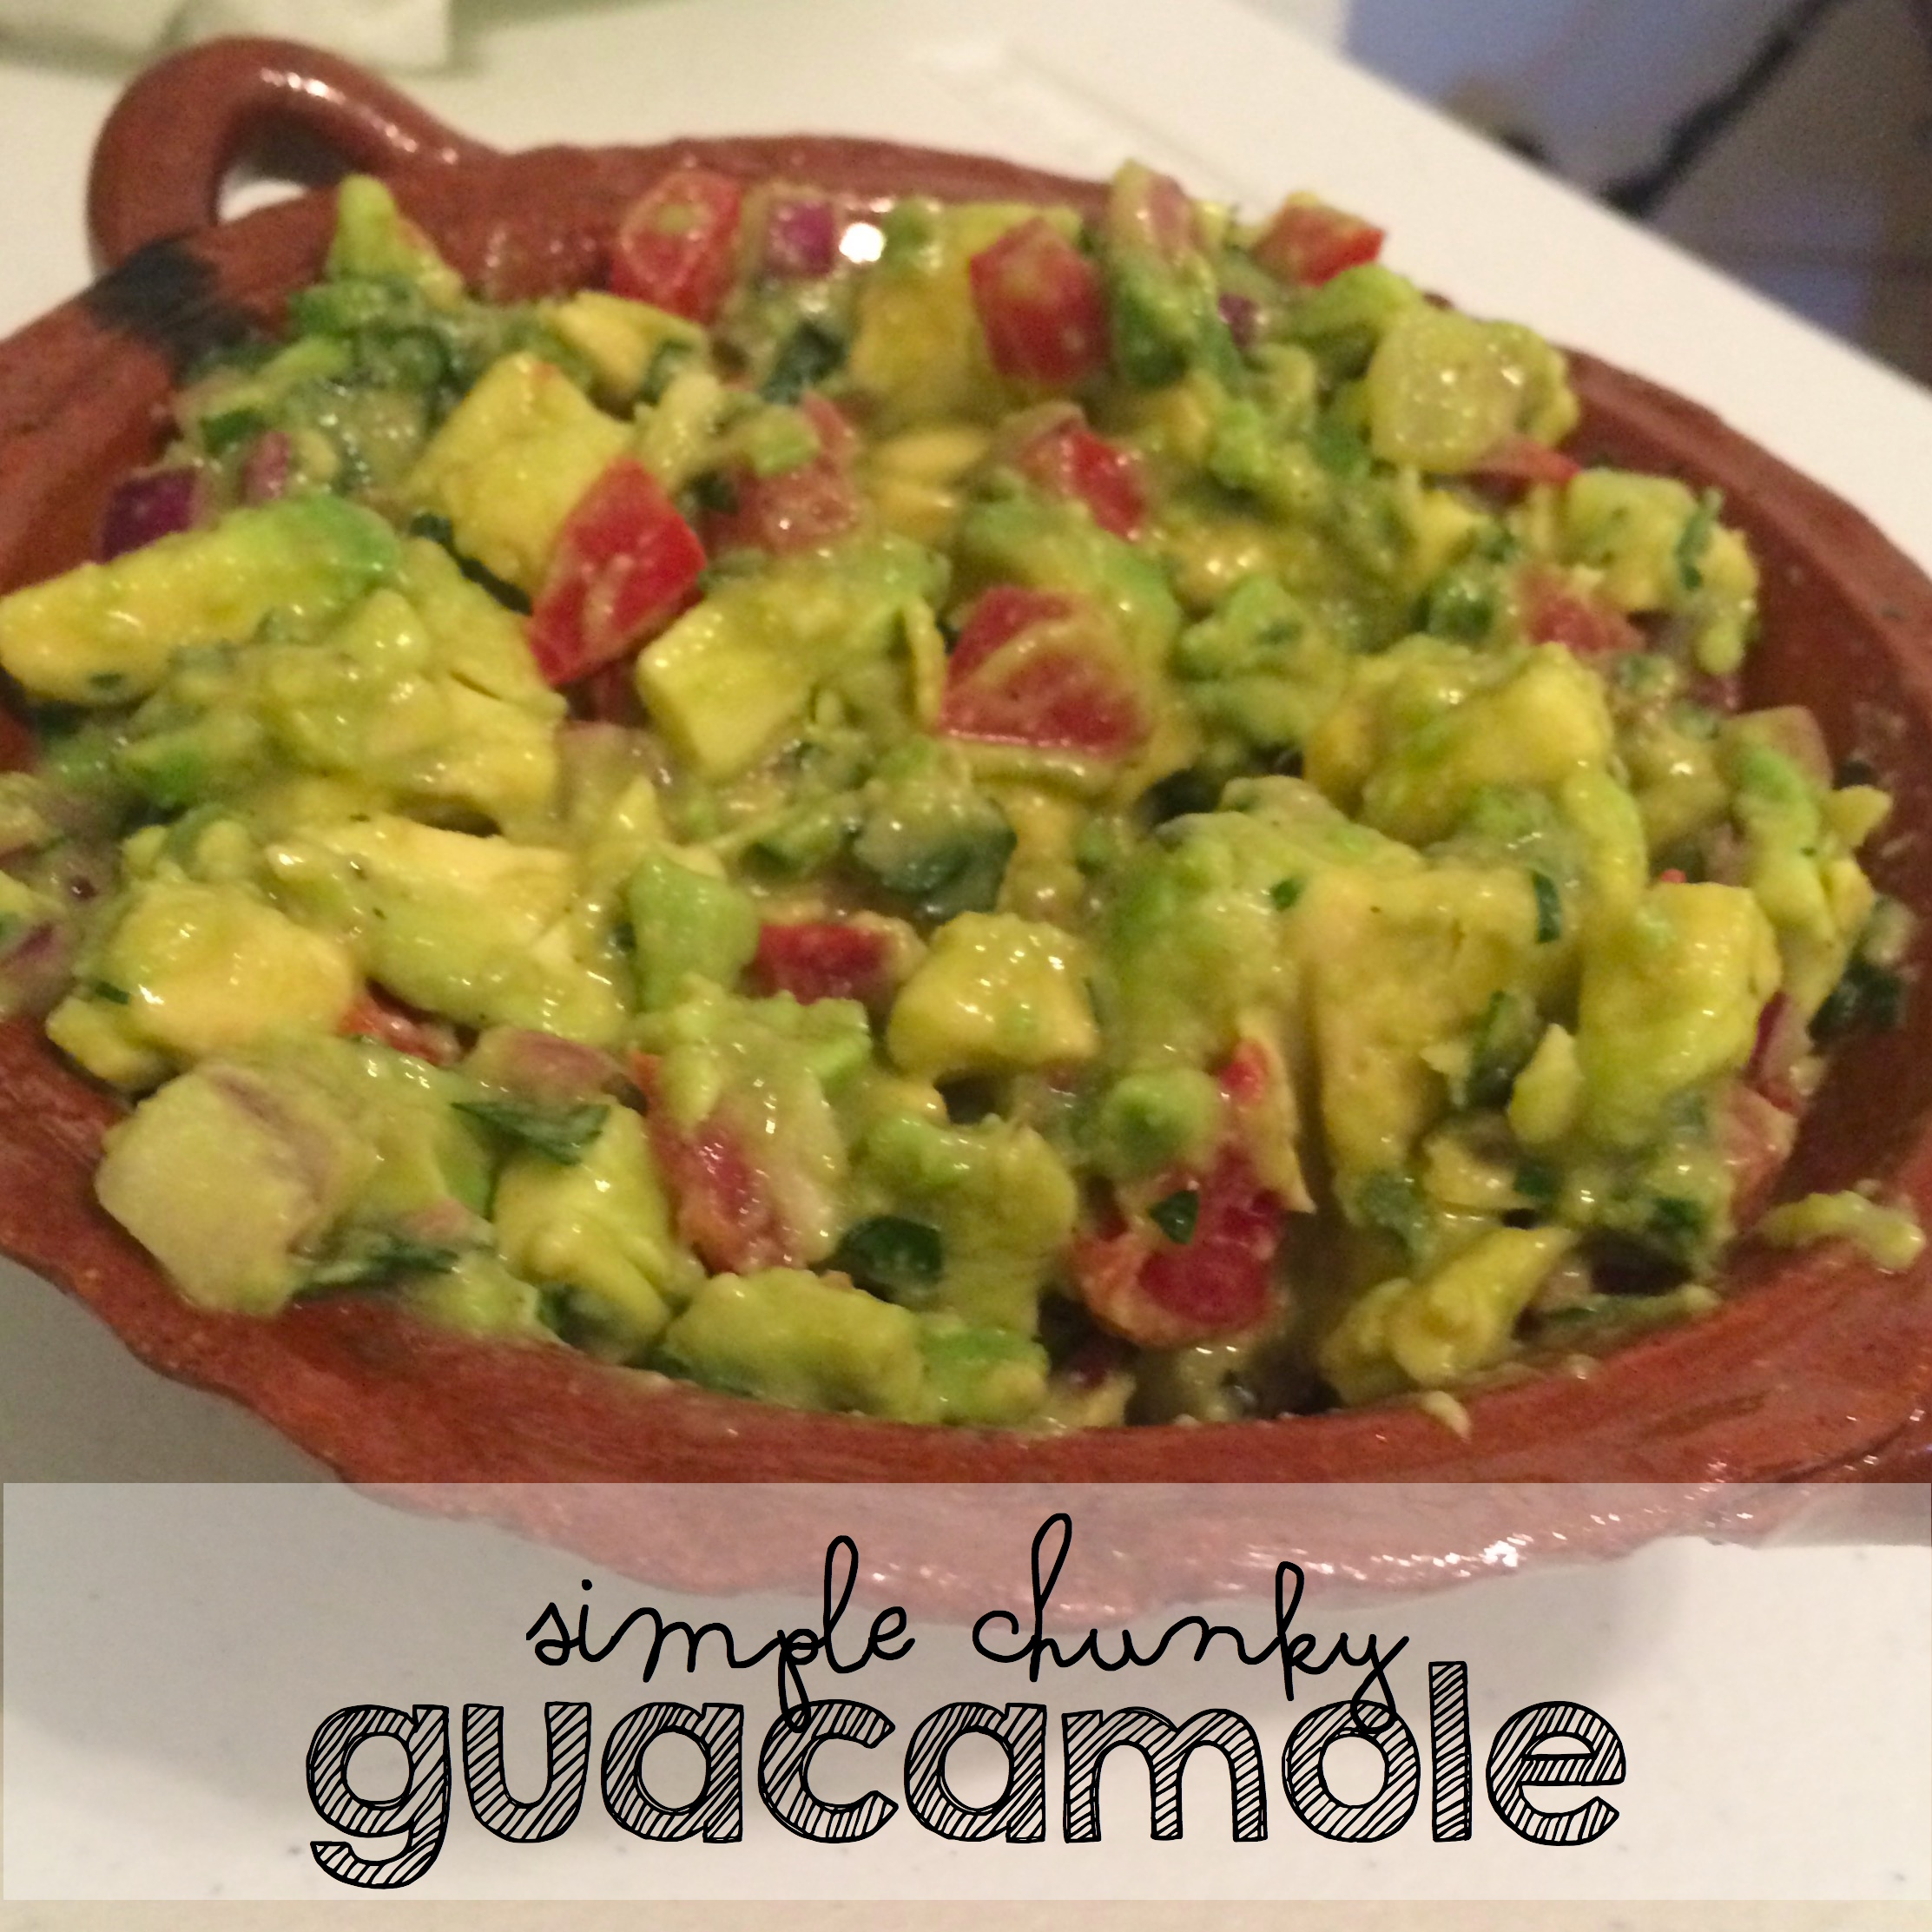 simple chunky guacamole recipe easy appetizer last minute appetizer recipe best guacamole moms bistro